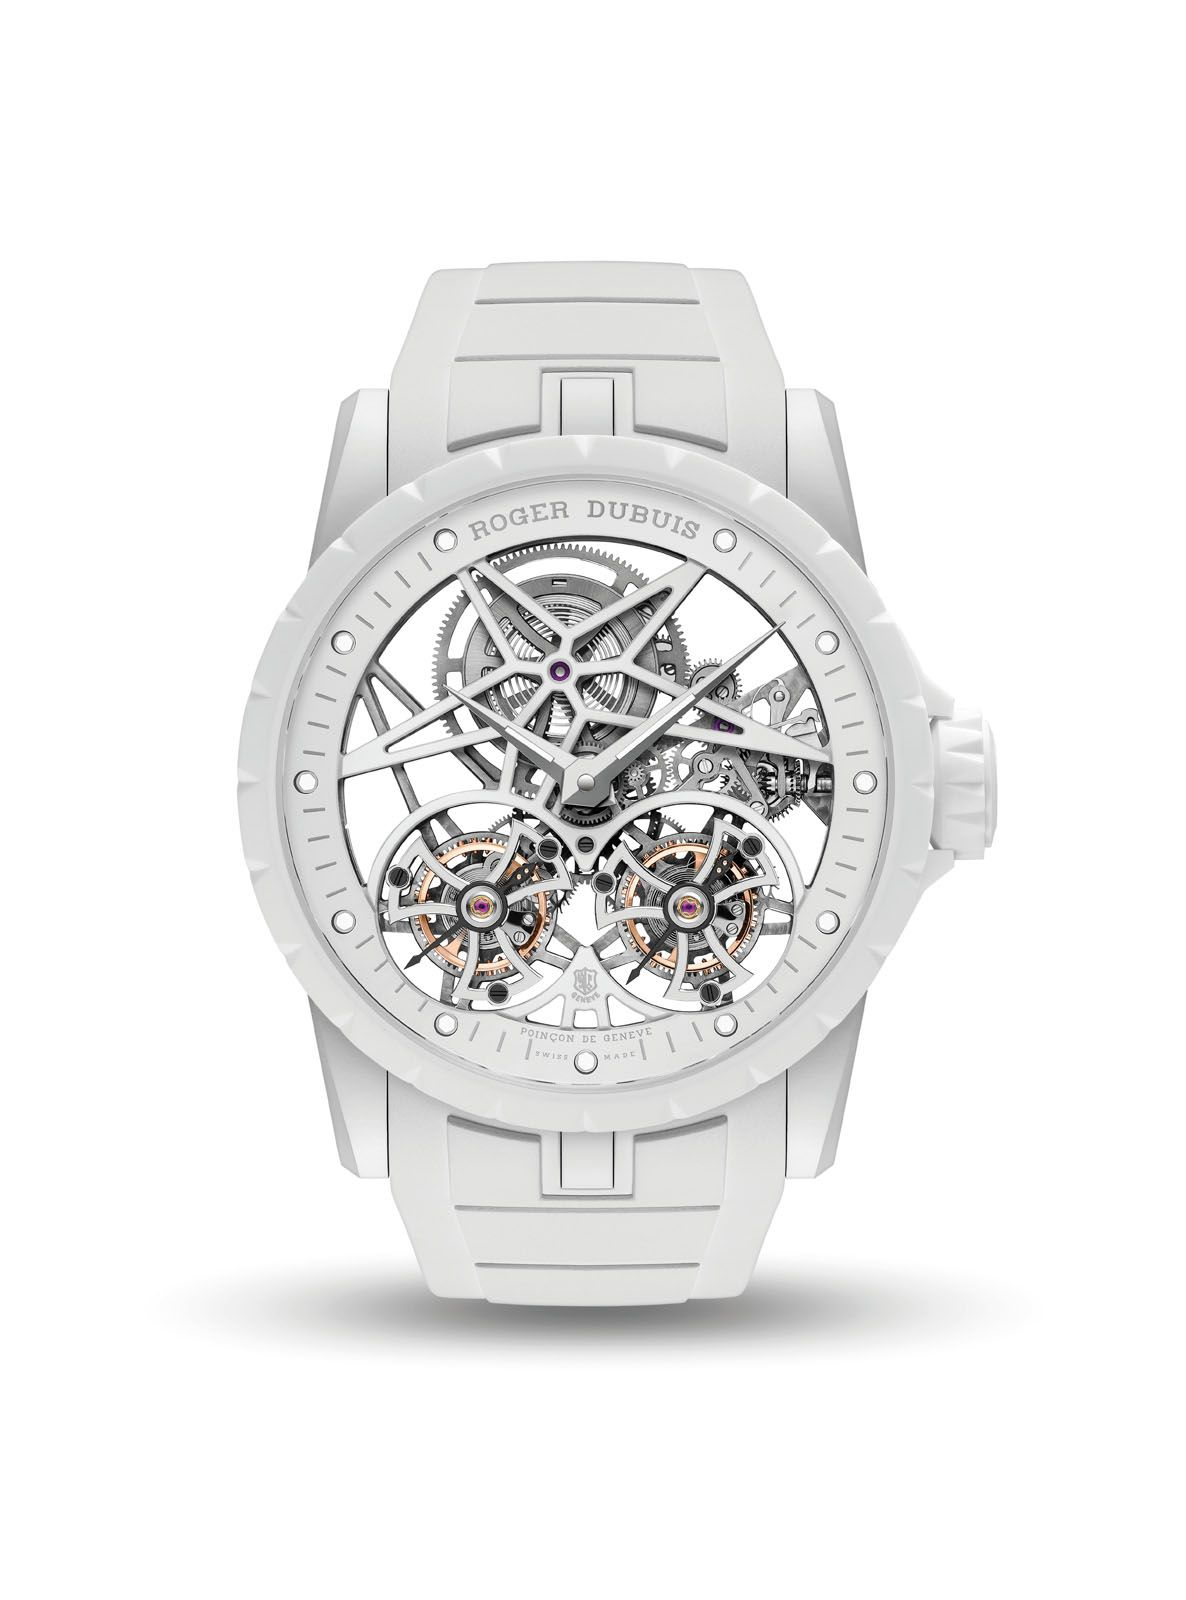 The Roger Dubuis Excalibur Twofold Is Beautiful Any Time Of The Day